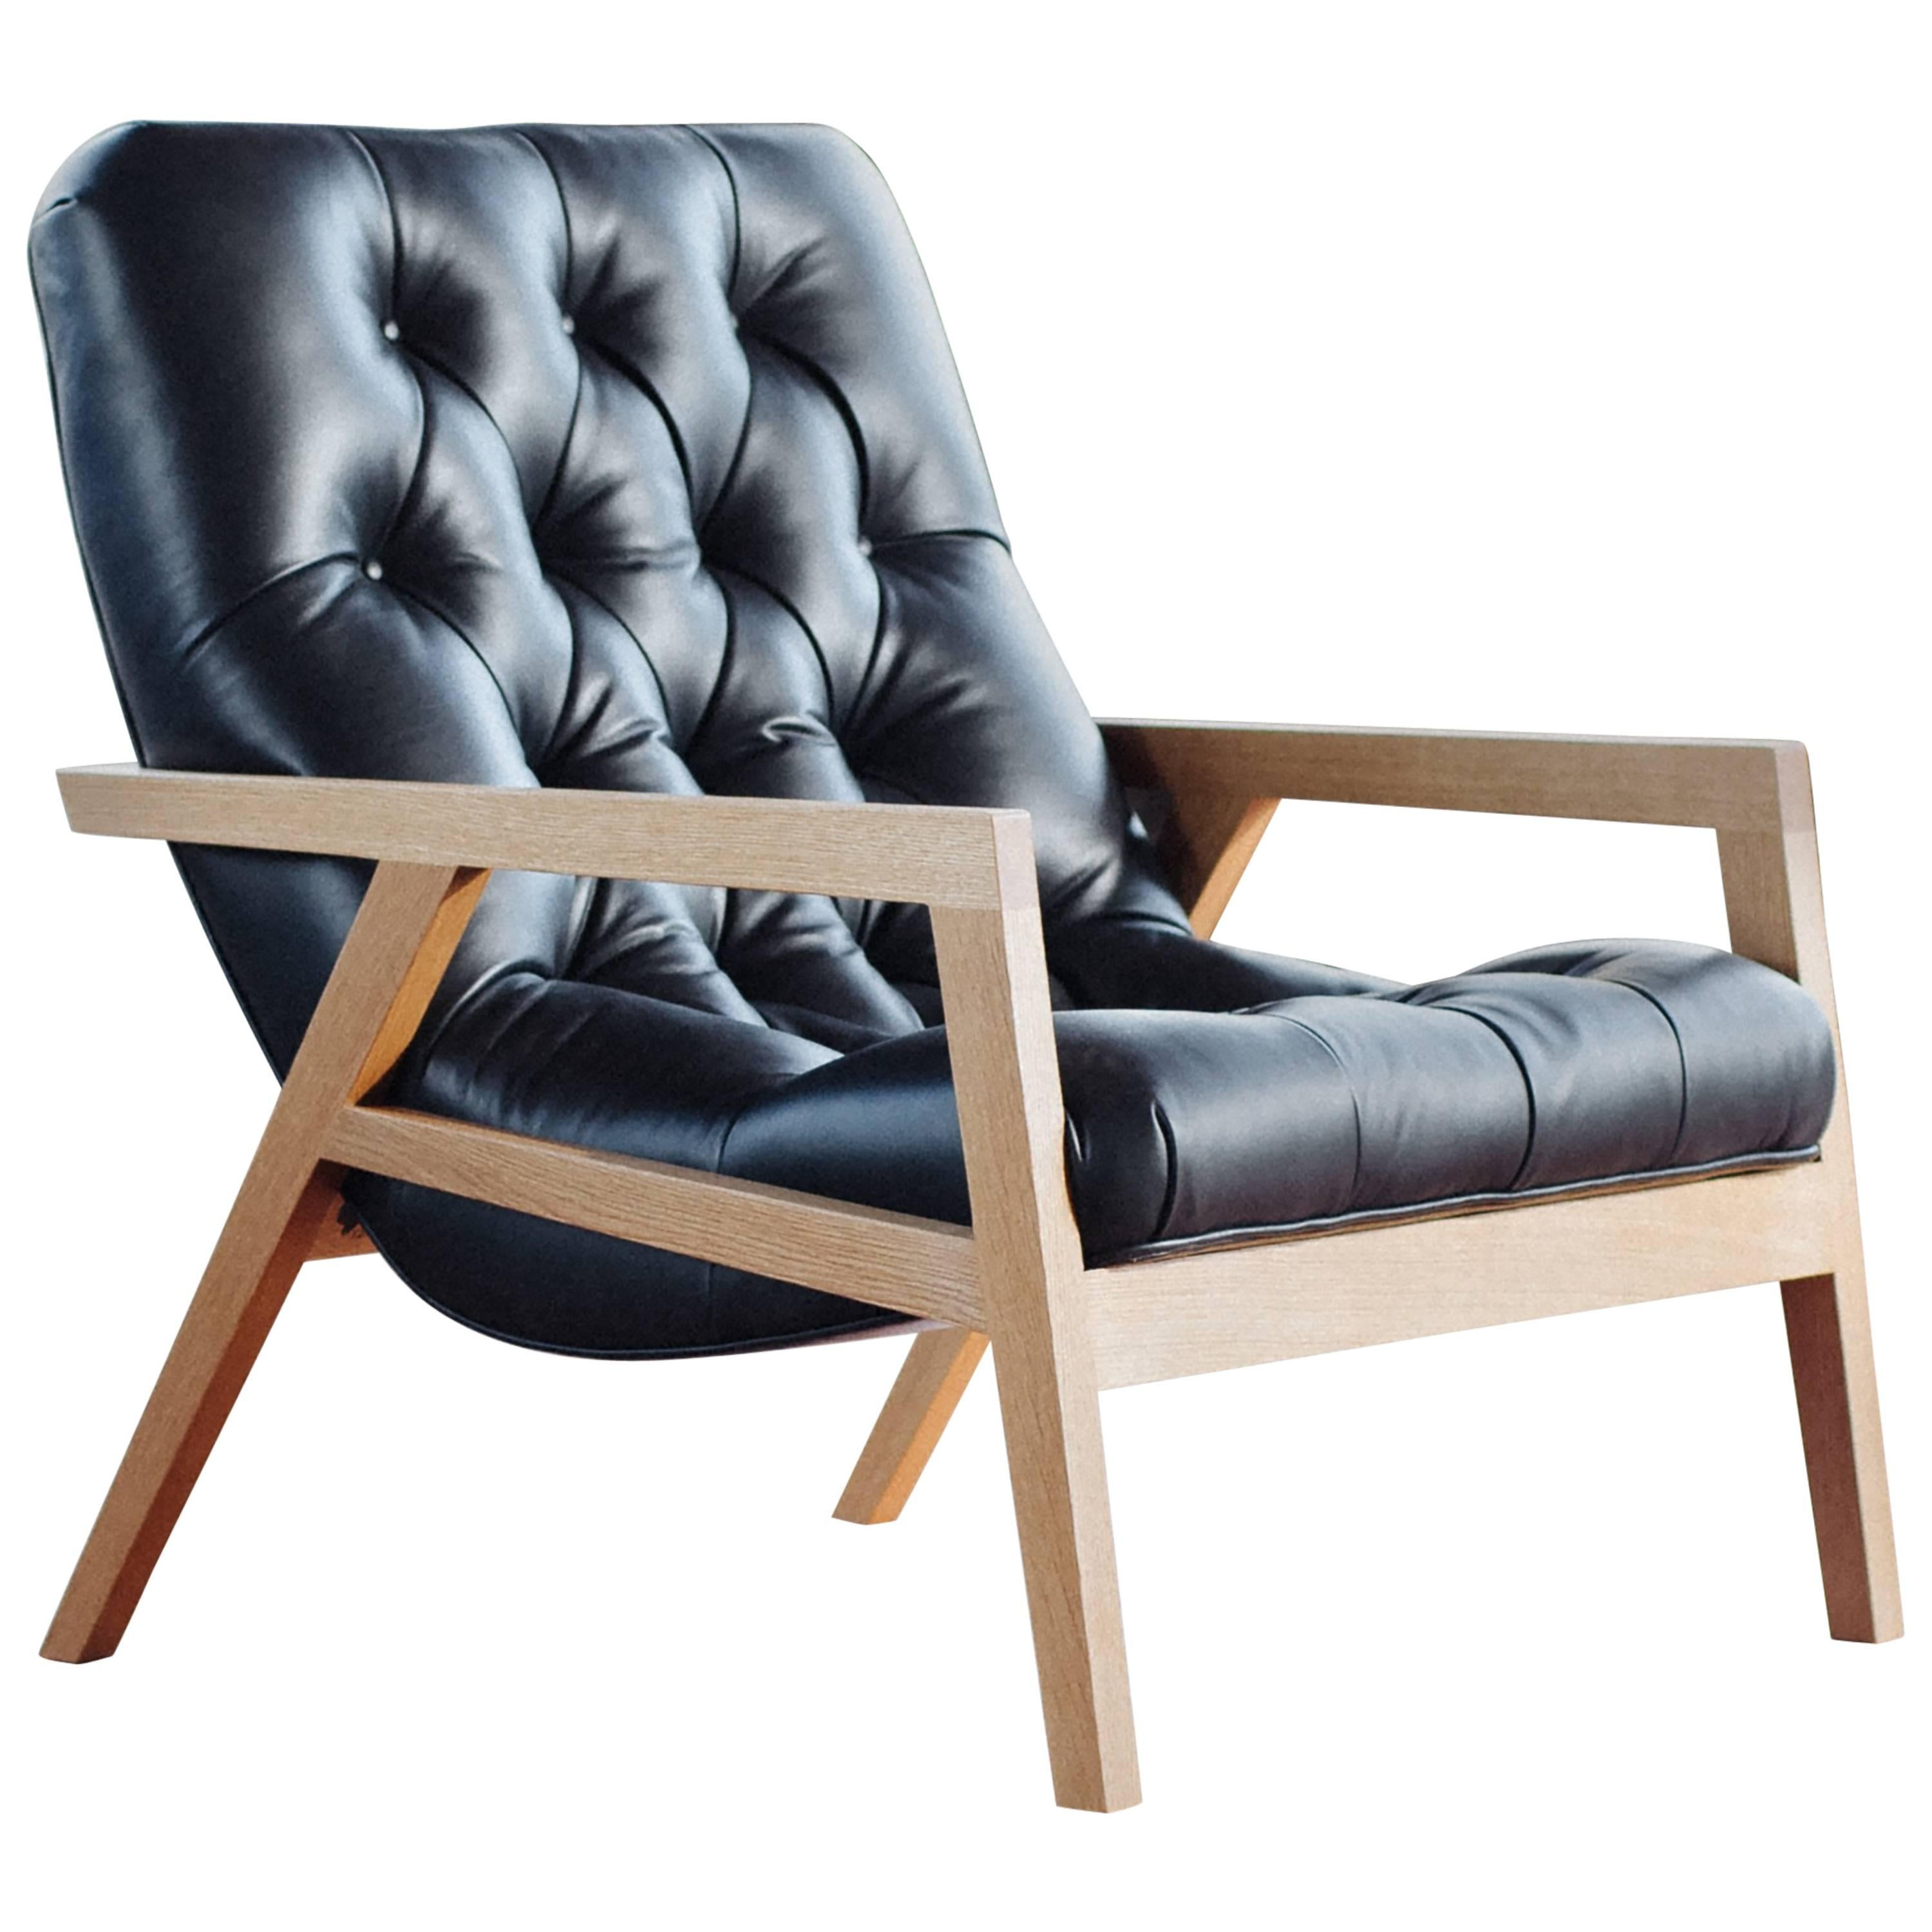 Regina Lounge Chair with White Oak Frame and Leather Diamond Tufted Upholstery